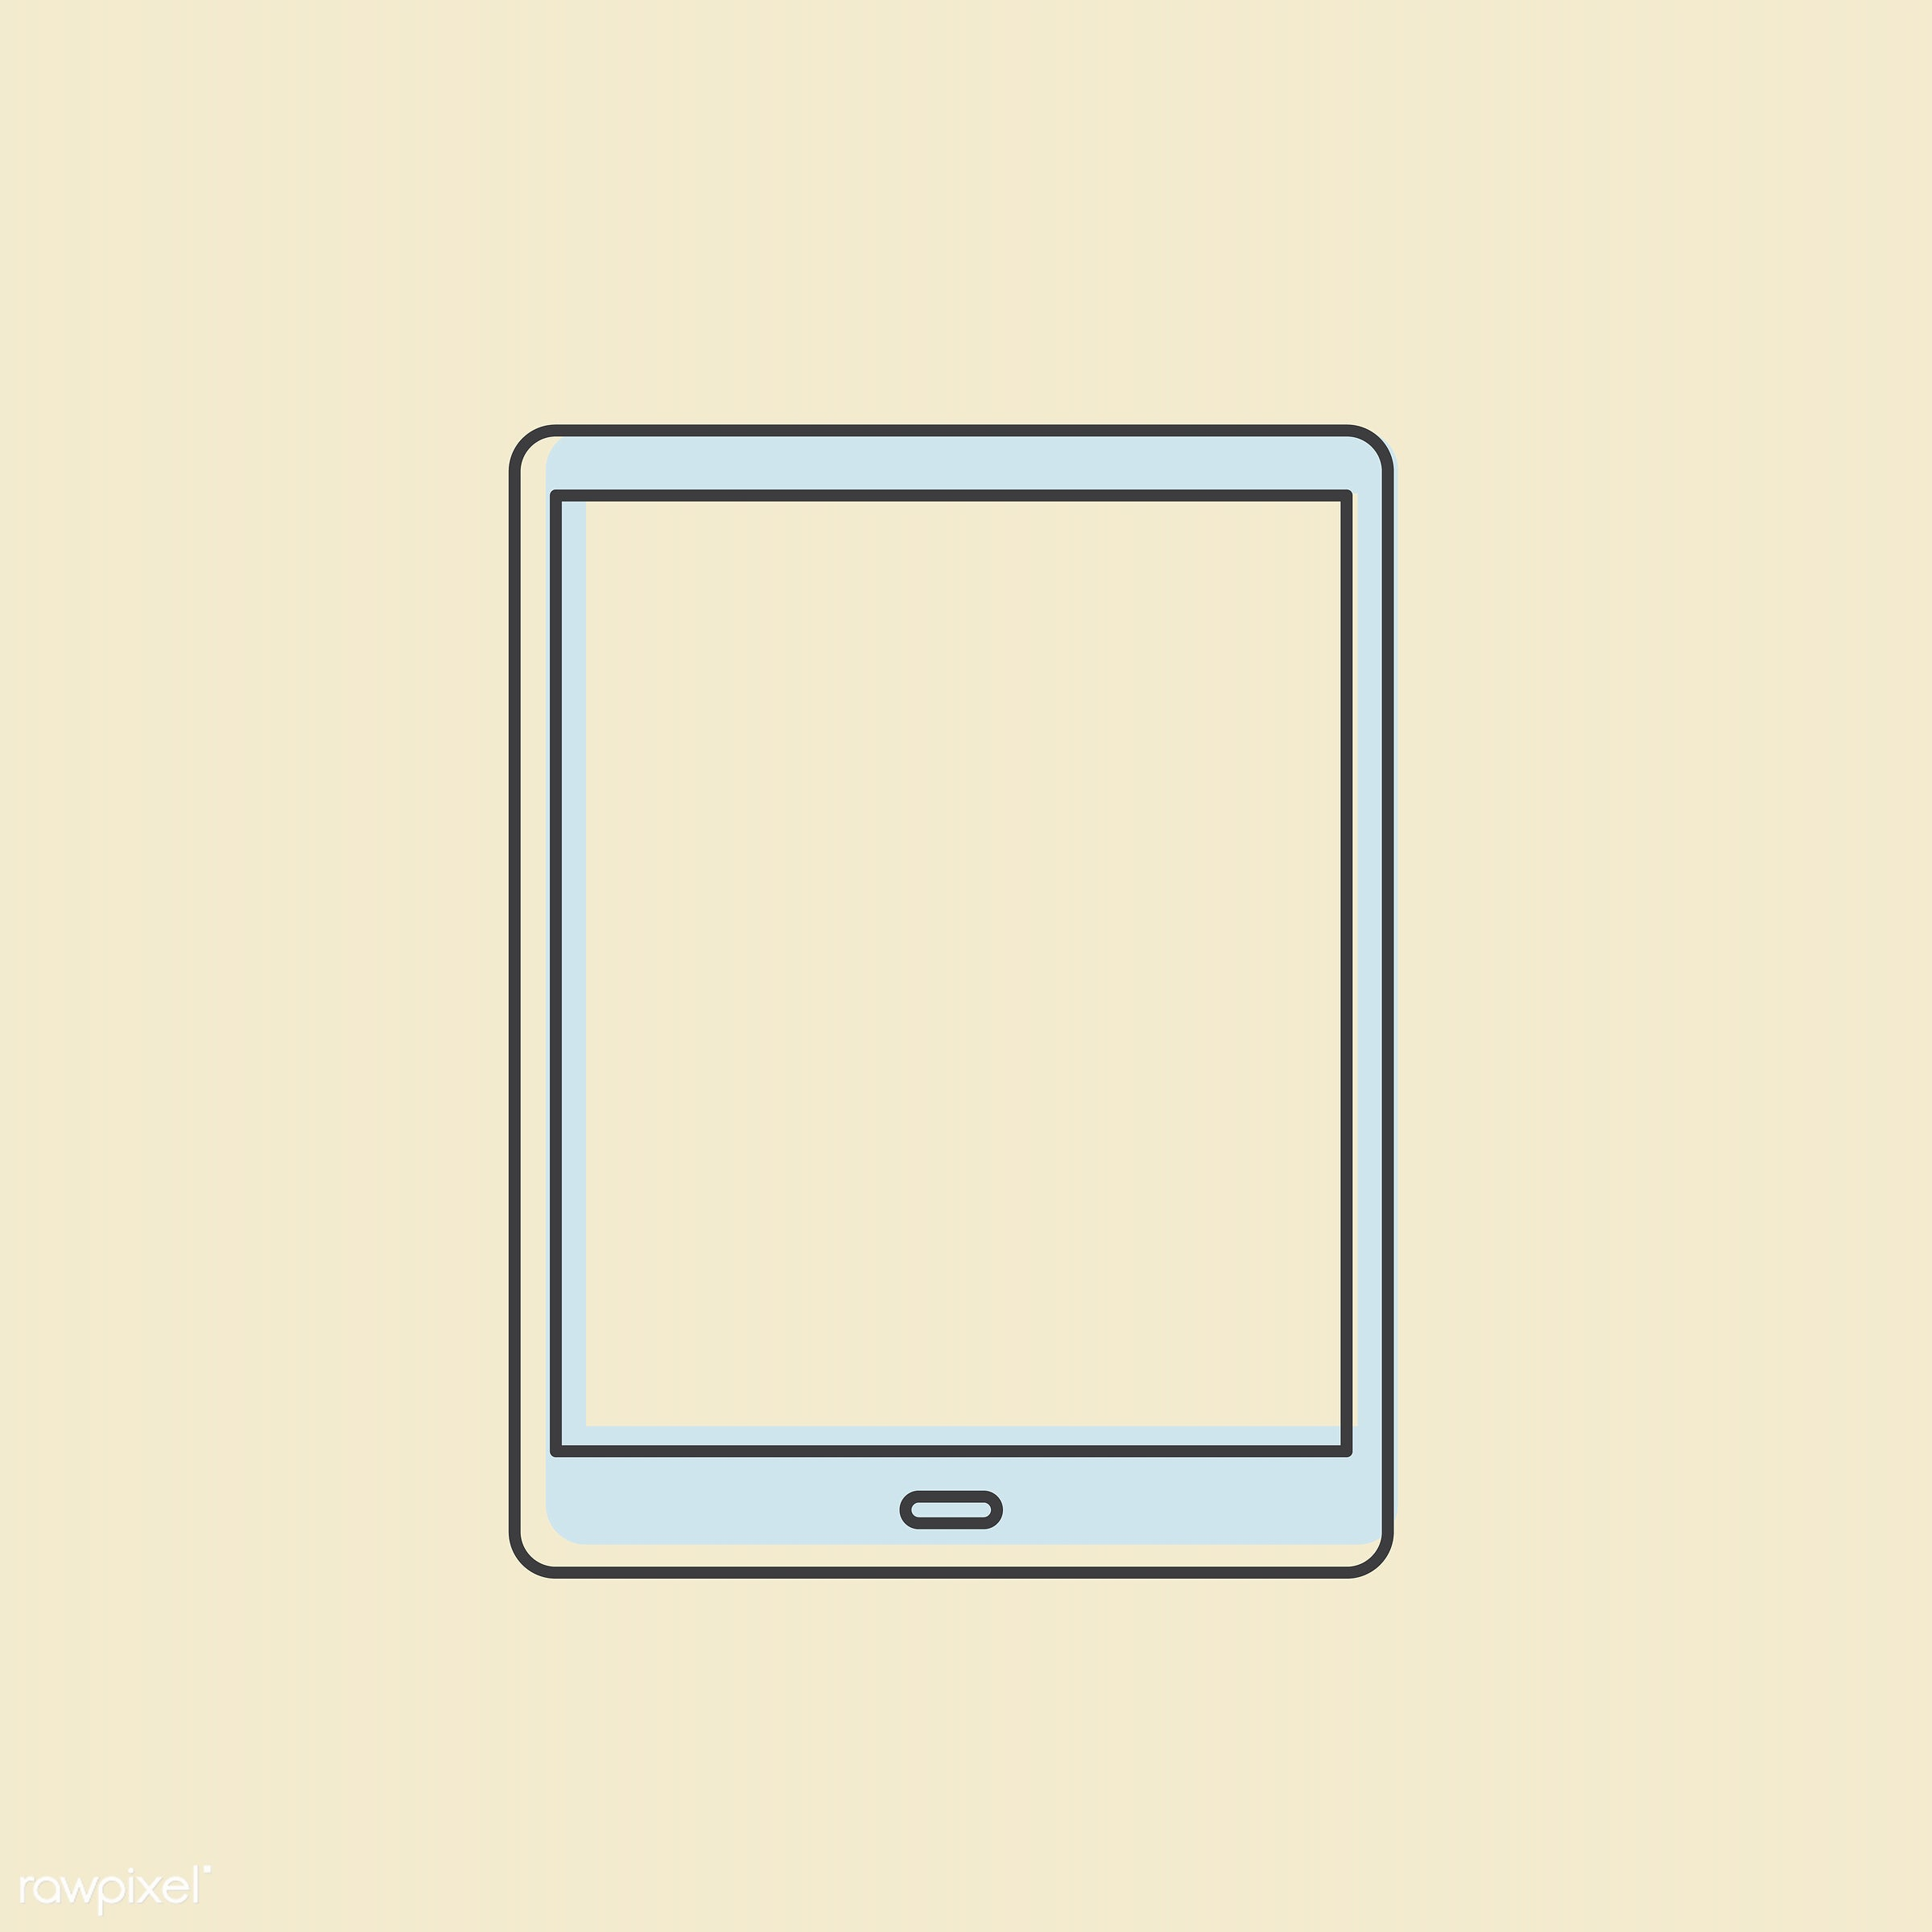 Vector of digital tablet icon - design, digital, equipment, graphic, icon, illustration, mobility, monitor, objects, screen...